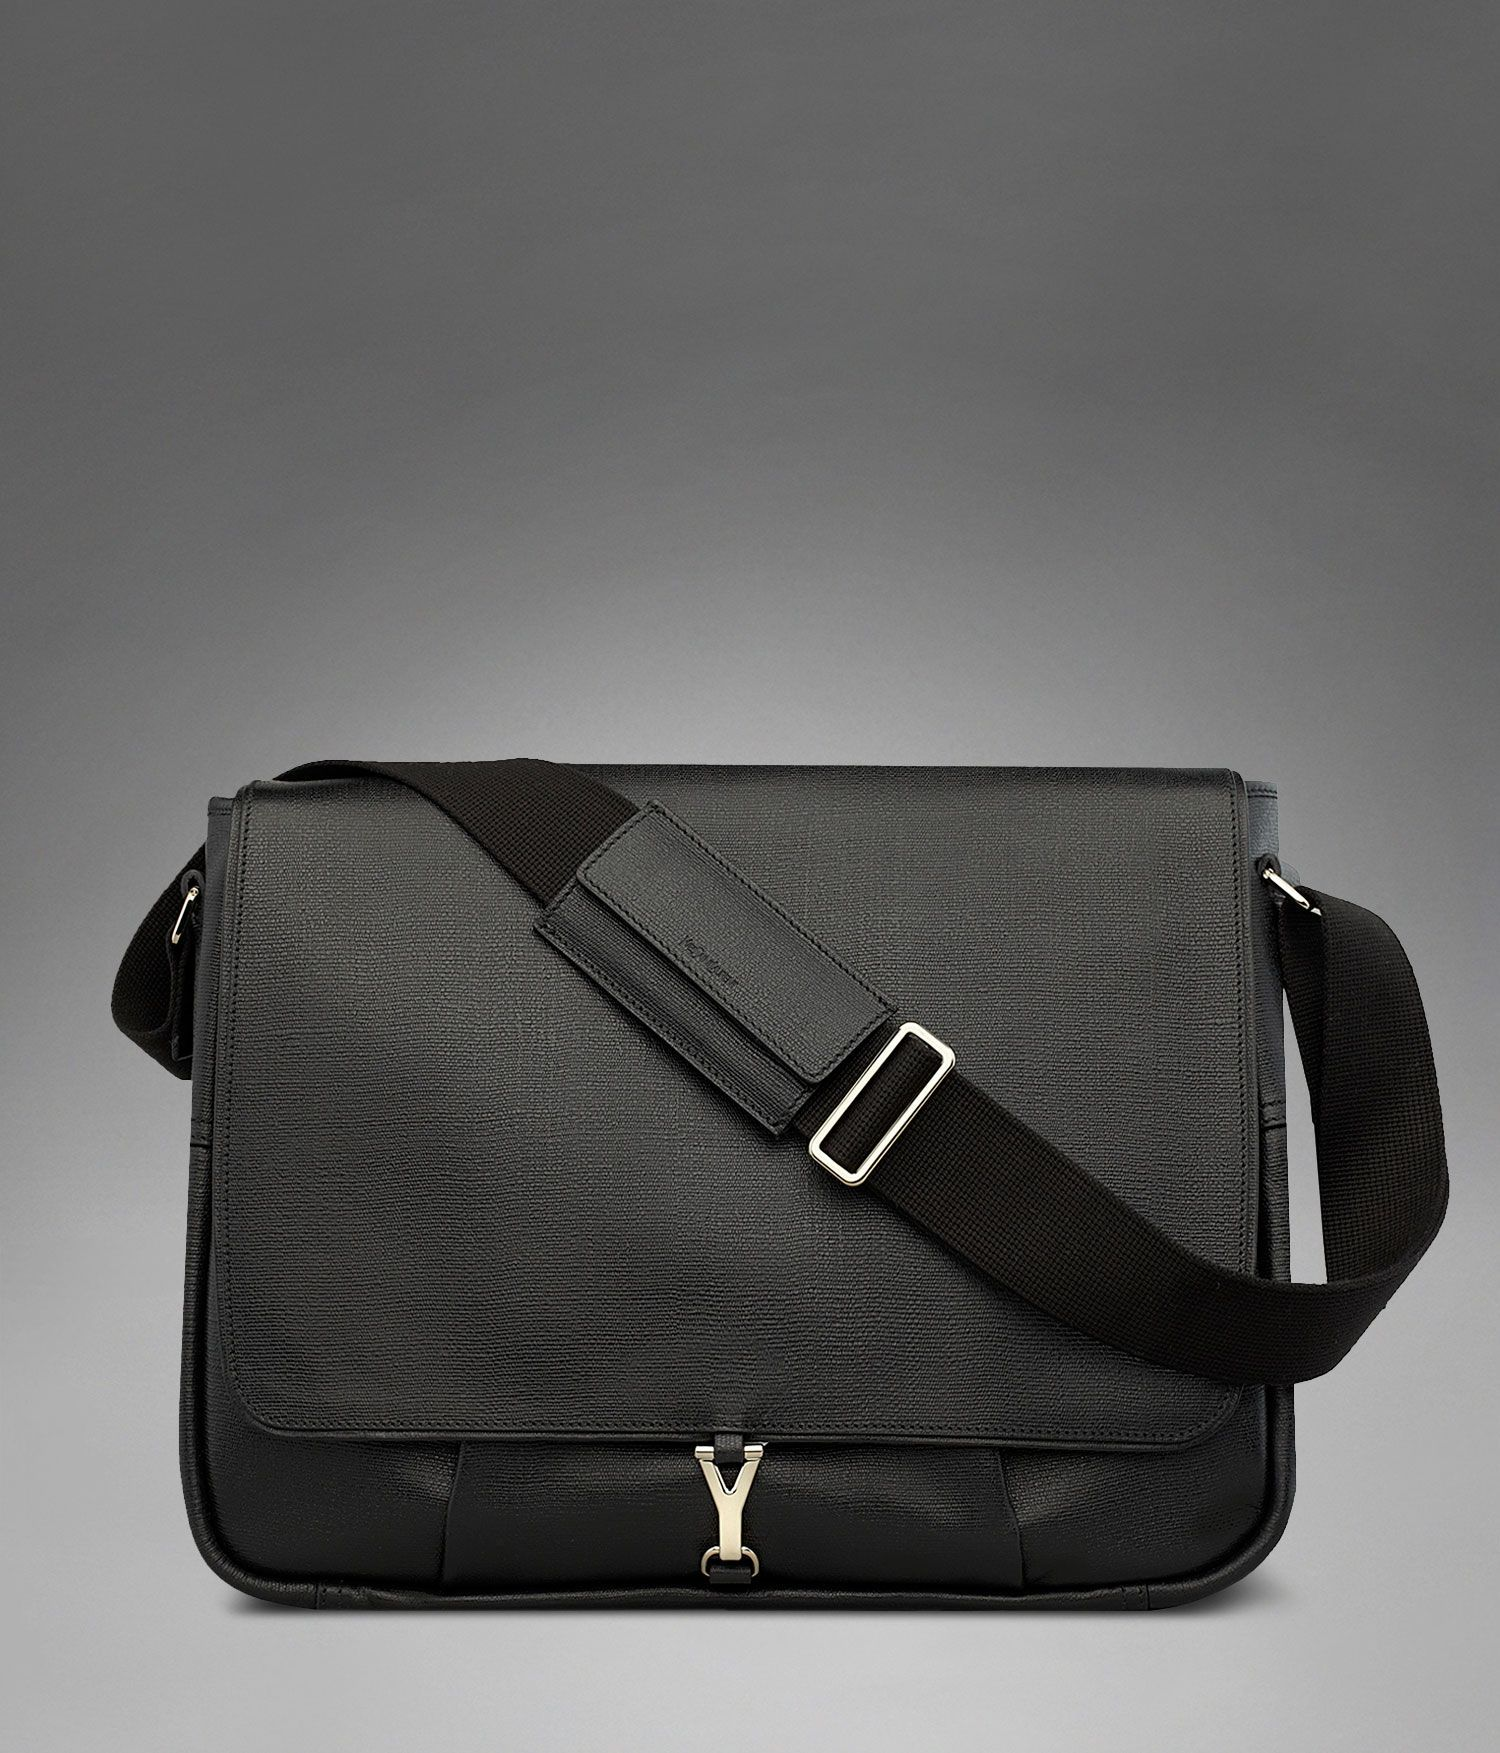 Yves Saint Laurent Large YSL Ycon Messenger Bag in Black Textured ...